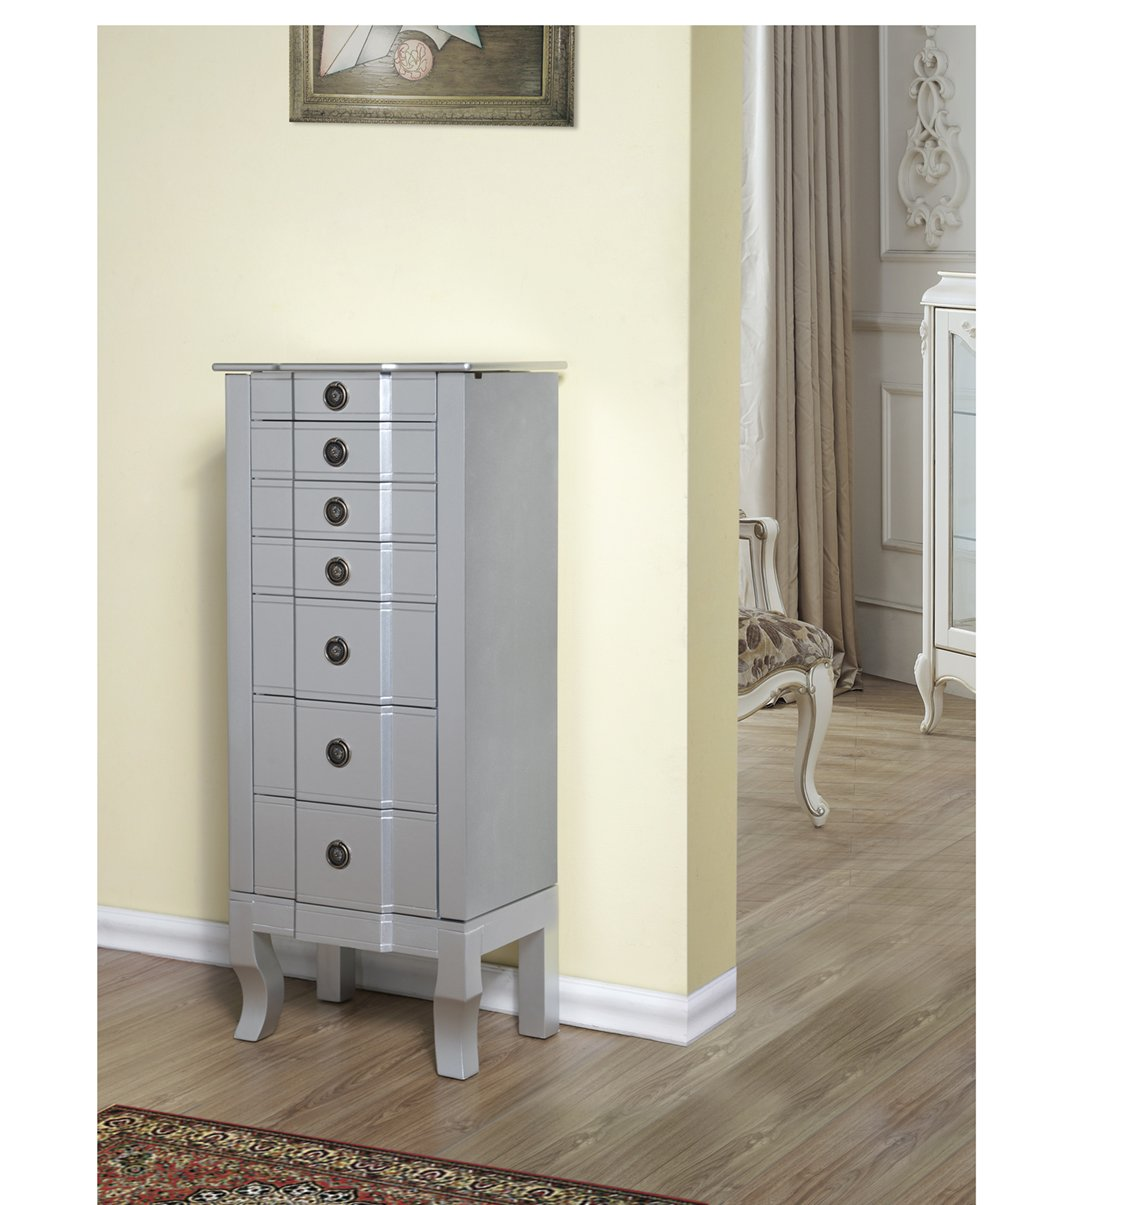 CTE 6 Drawers Jewelry Armoire - Silver